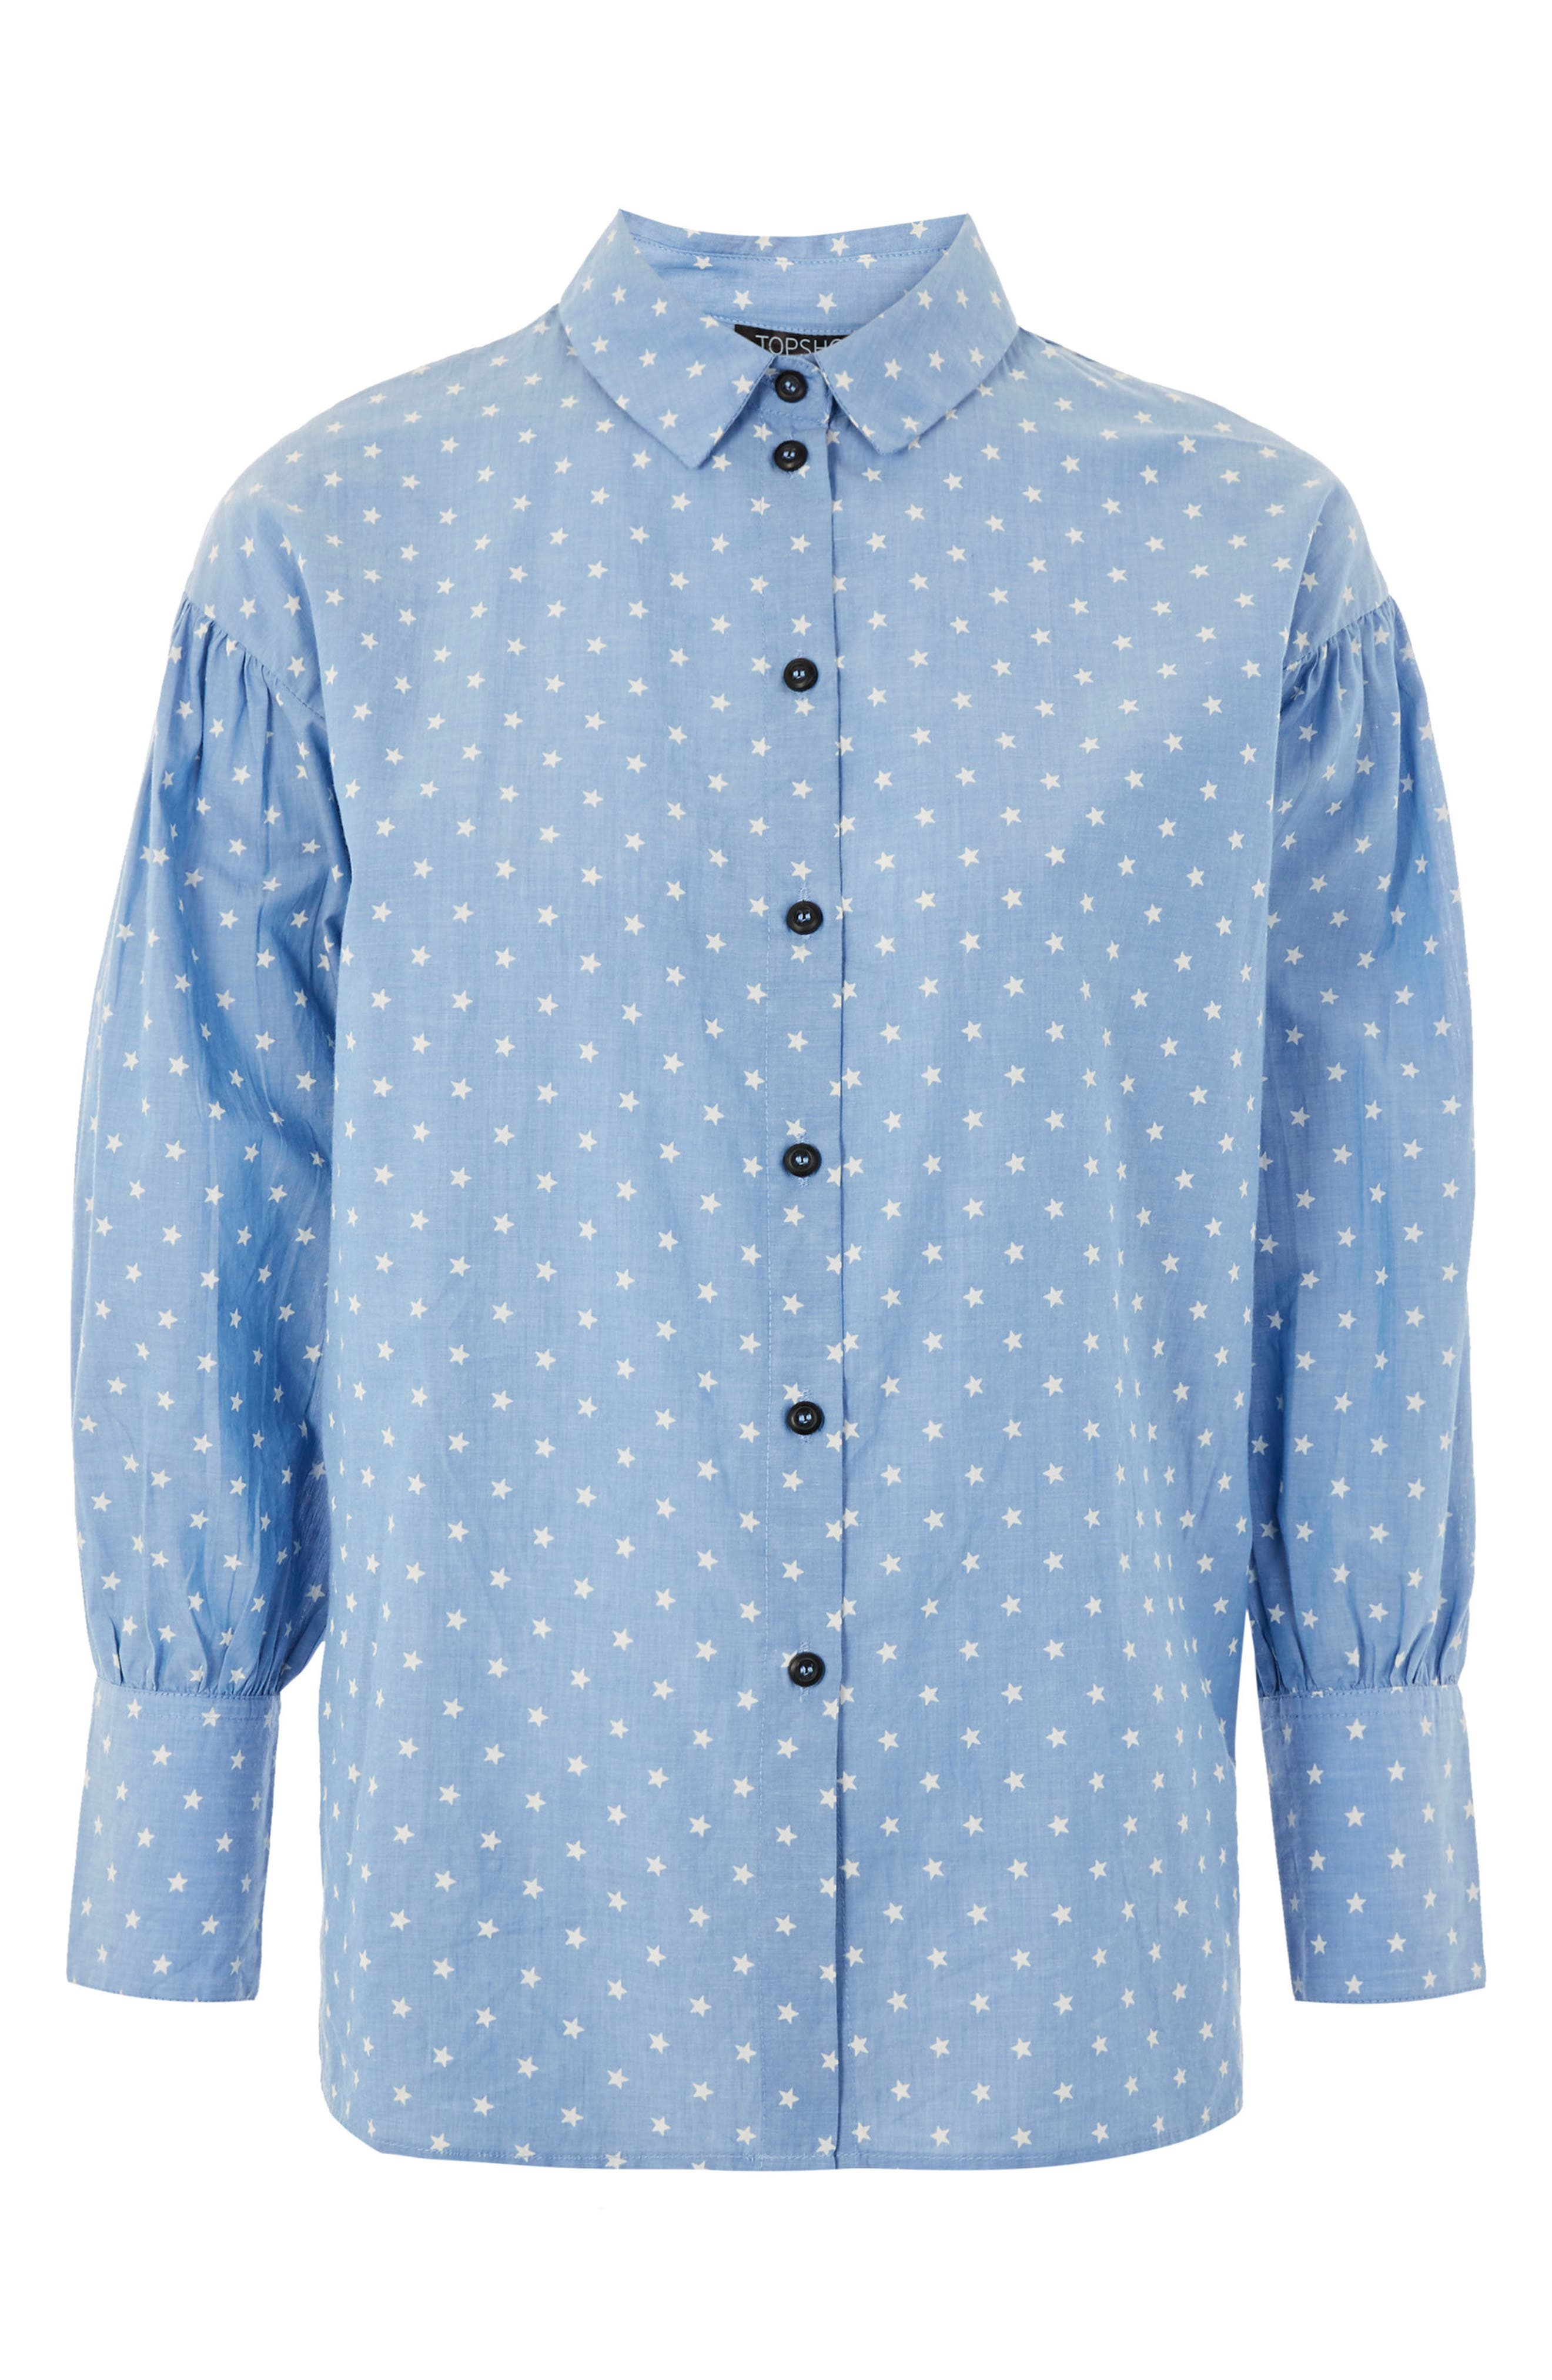 Star Print Chambray Shirt,                             Alternate thumbnail 4, color,                             400